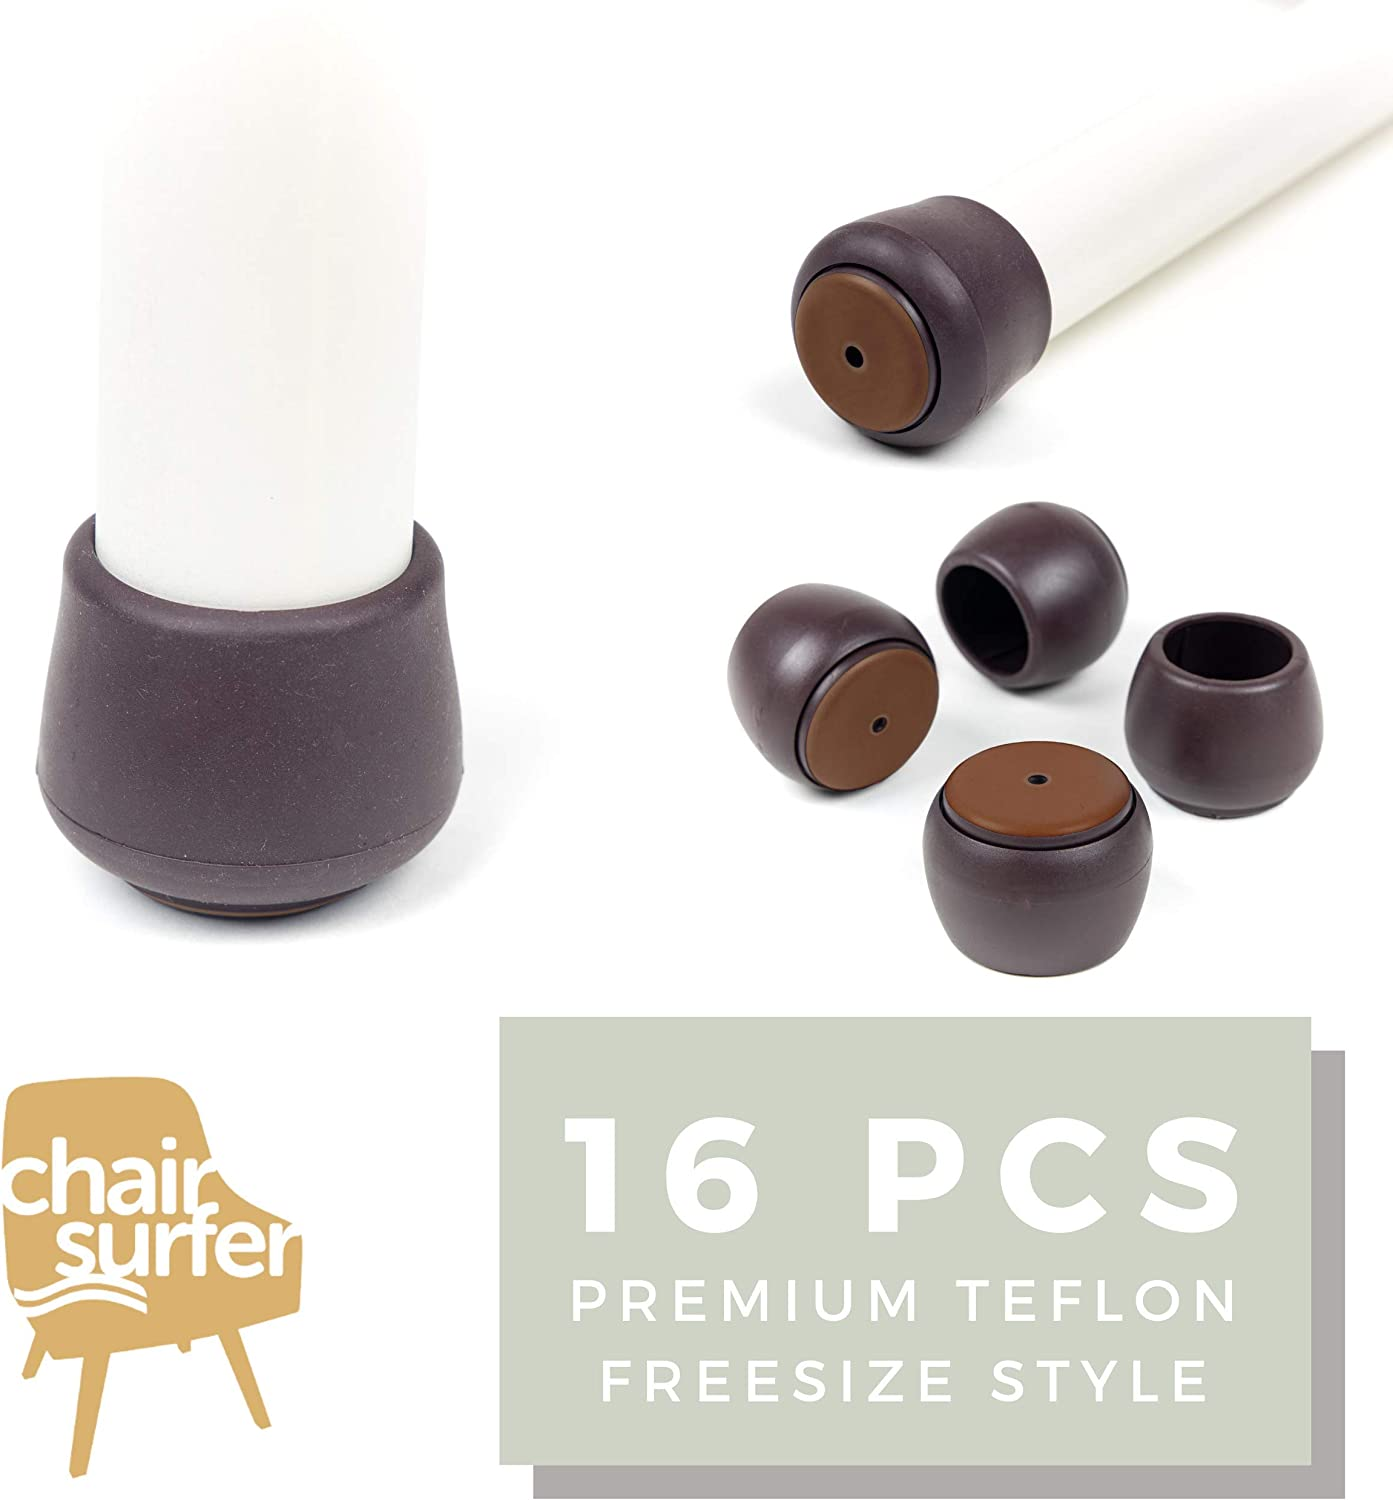 Chair Surfer Premium Furniture Leg Caps - Freesize, Teflon Pad, 16 Set - Floor Protectors with Extra Glide Sliders. Elastic Caps for Easy Hardwood Floor Protection. No Noise, No Dust (21mm~24mm) XS